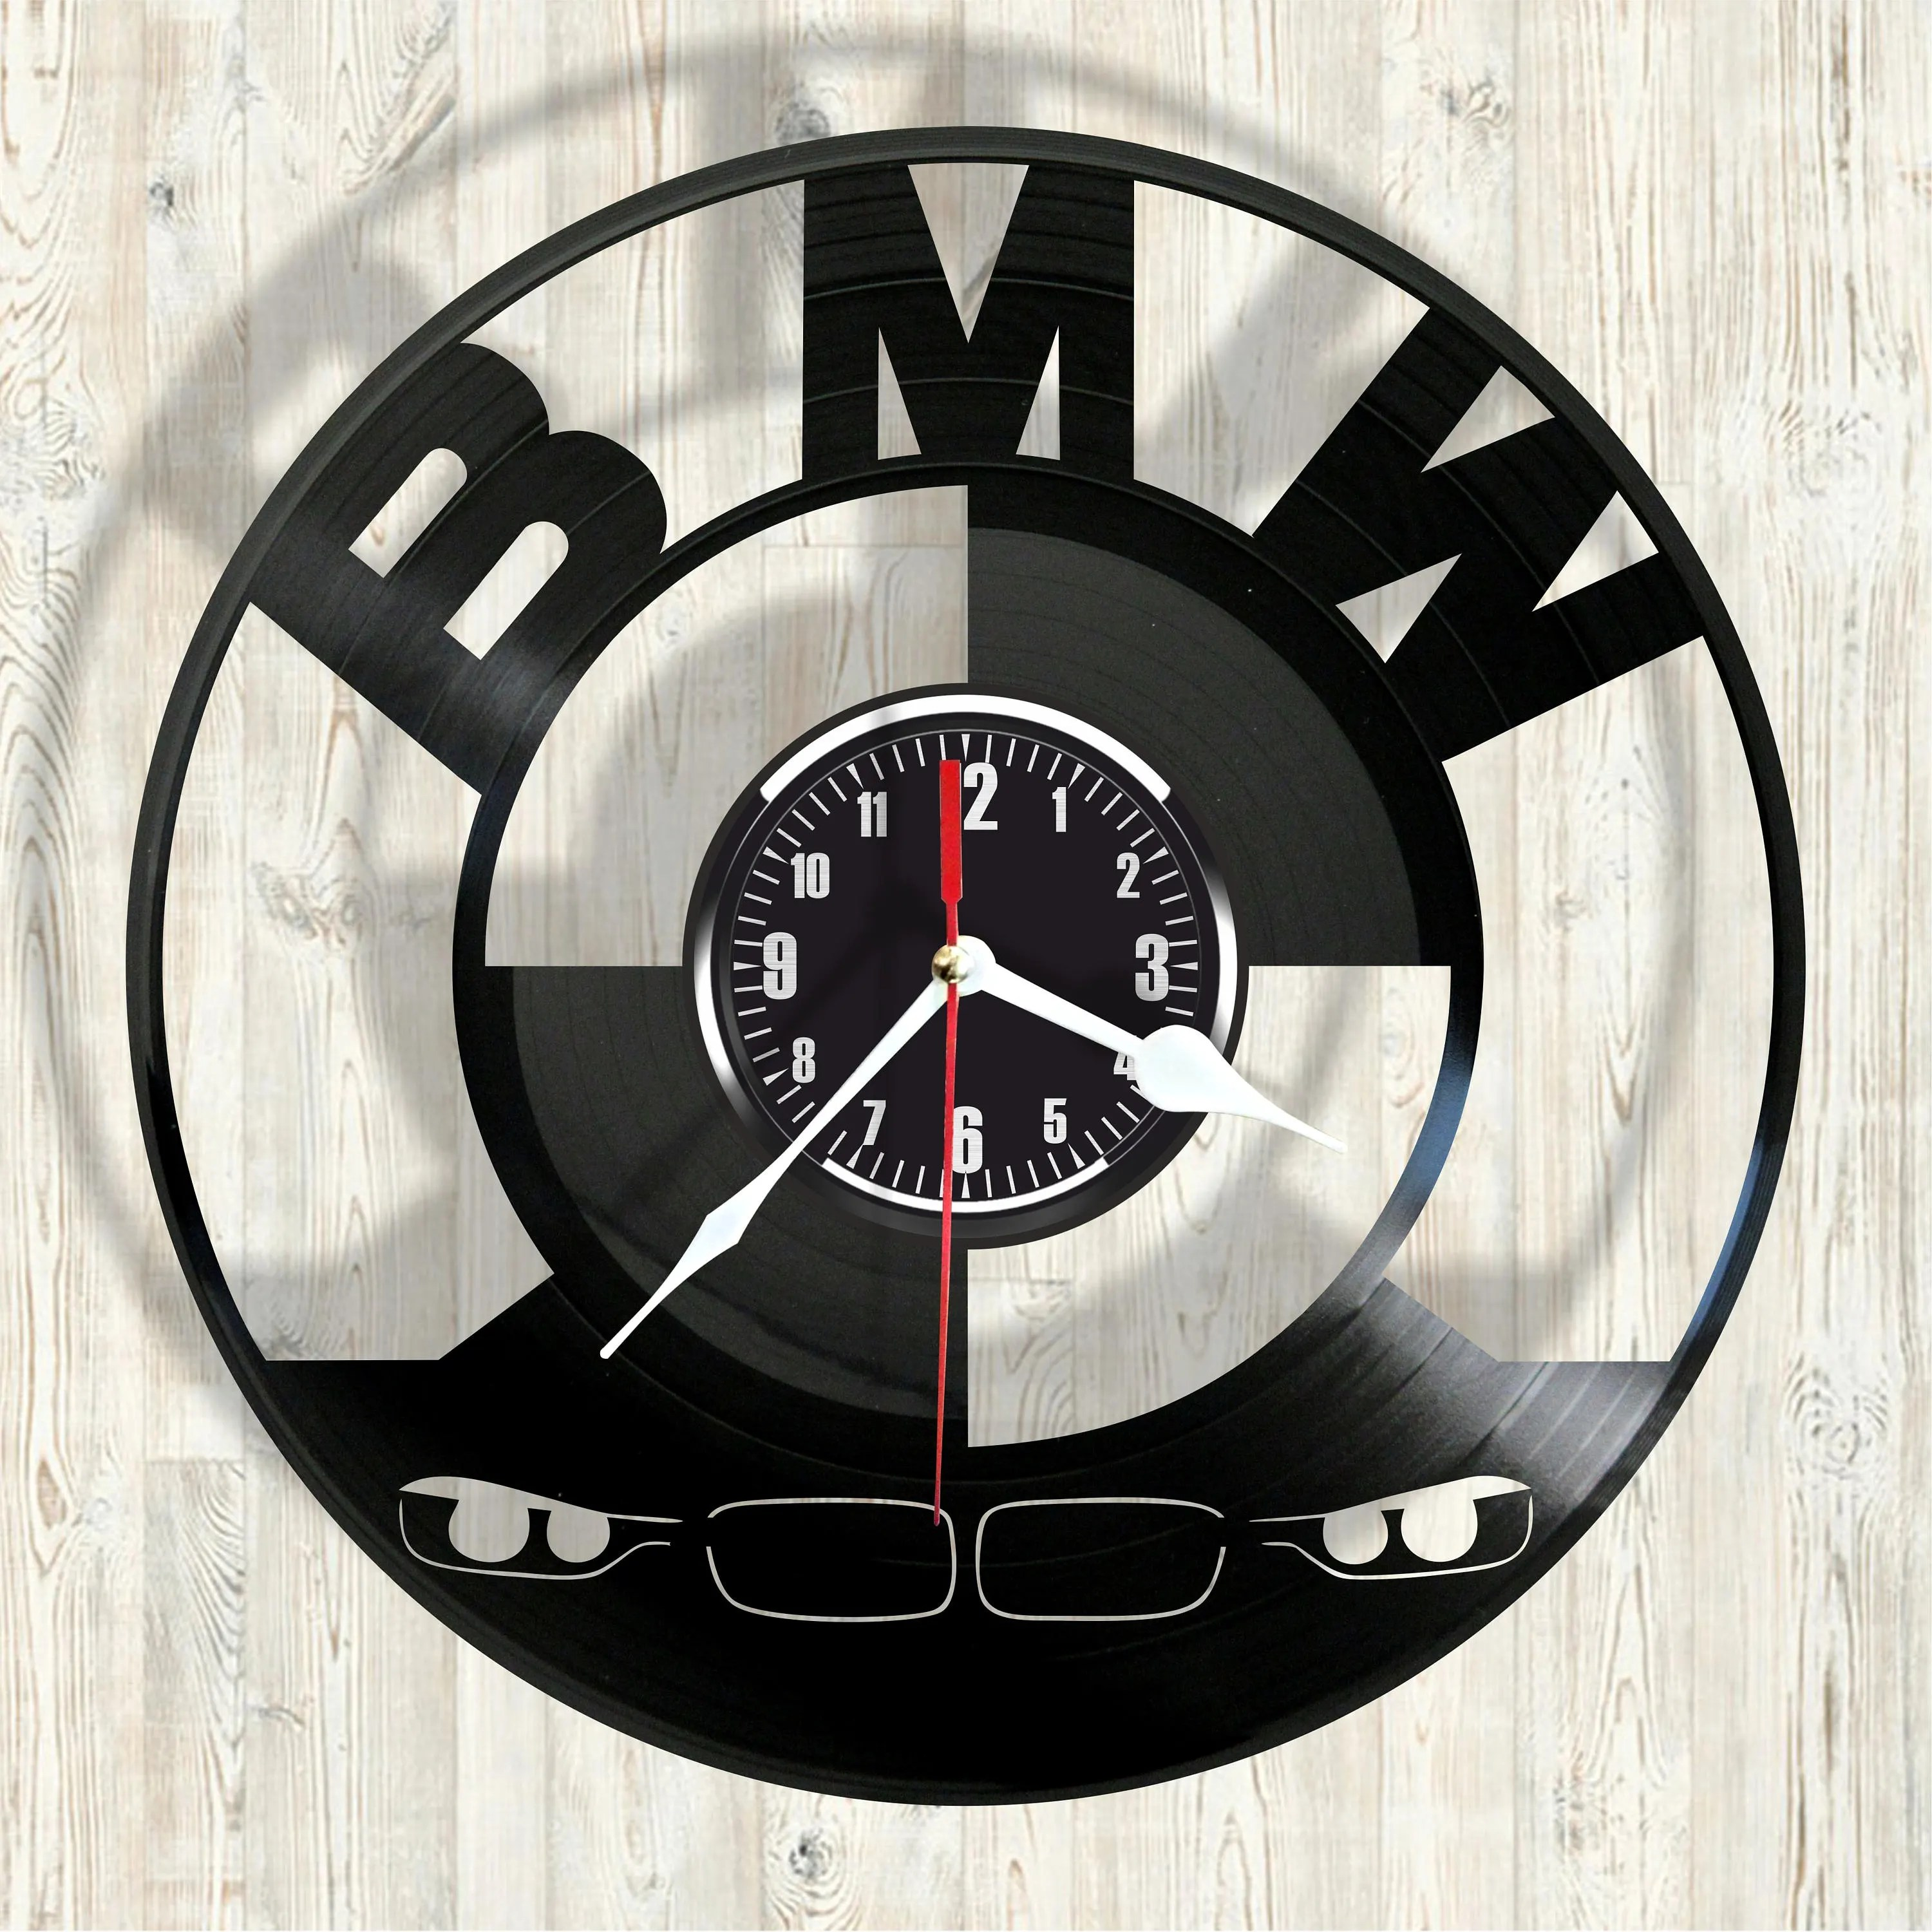 Bettwäsche Bmw Bmw Vinyl Record Wall Clock Best Eco Friendly Gift For Any Occasion